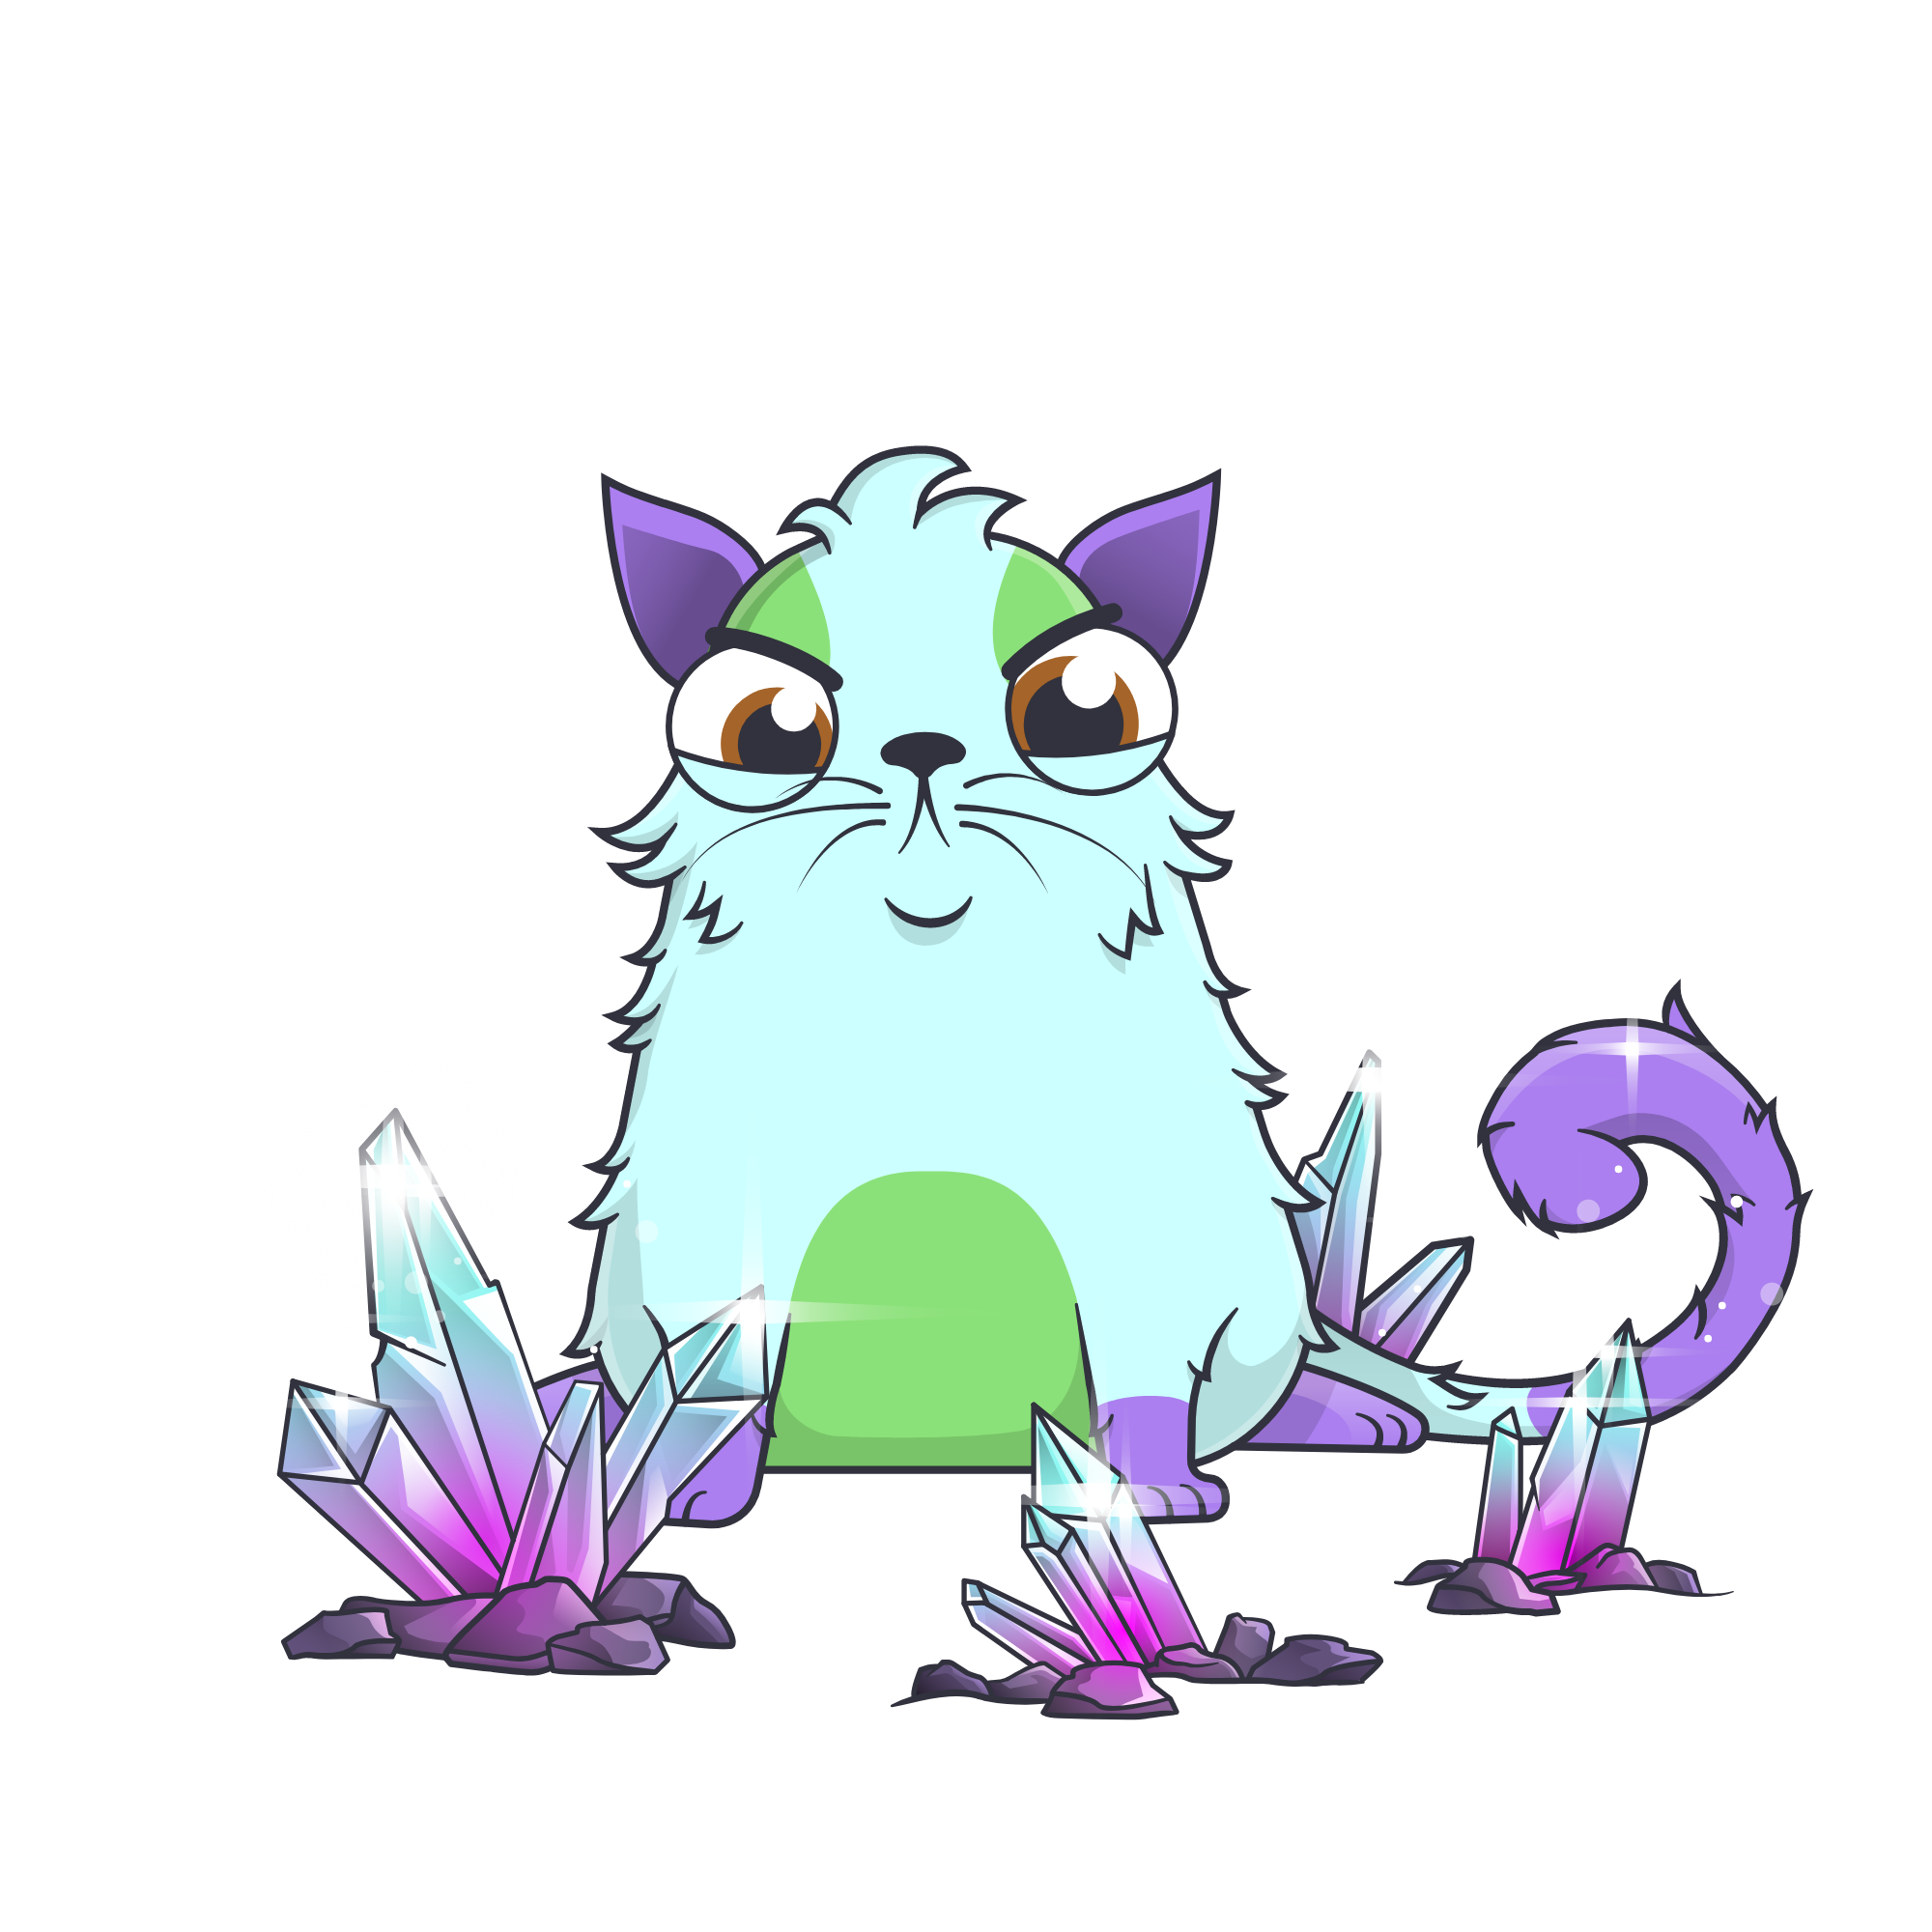 cryptokitty #1952109